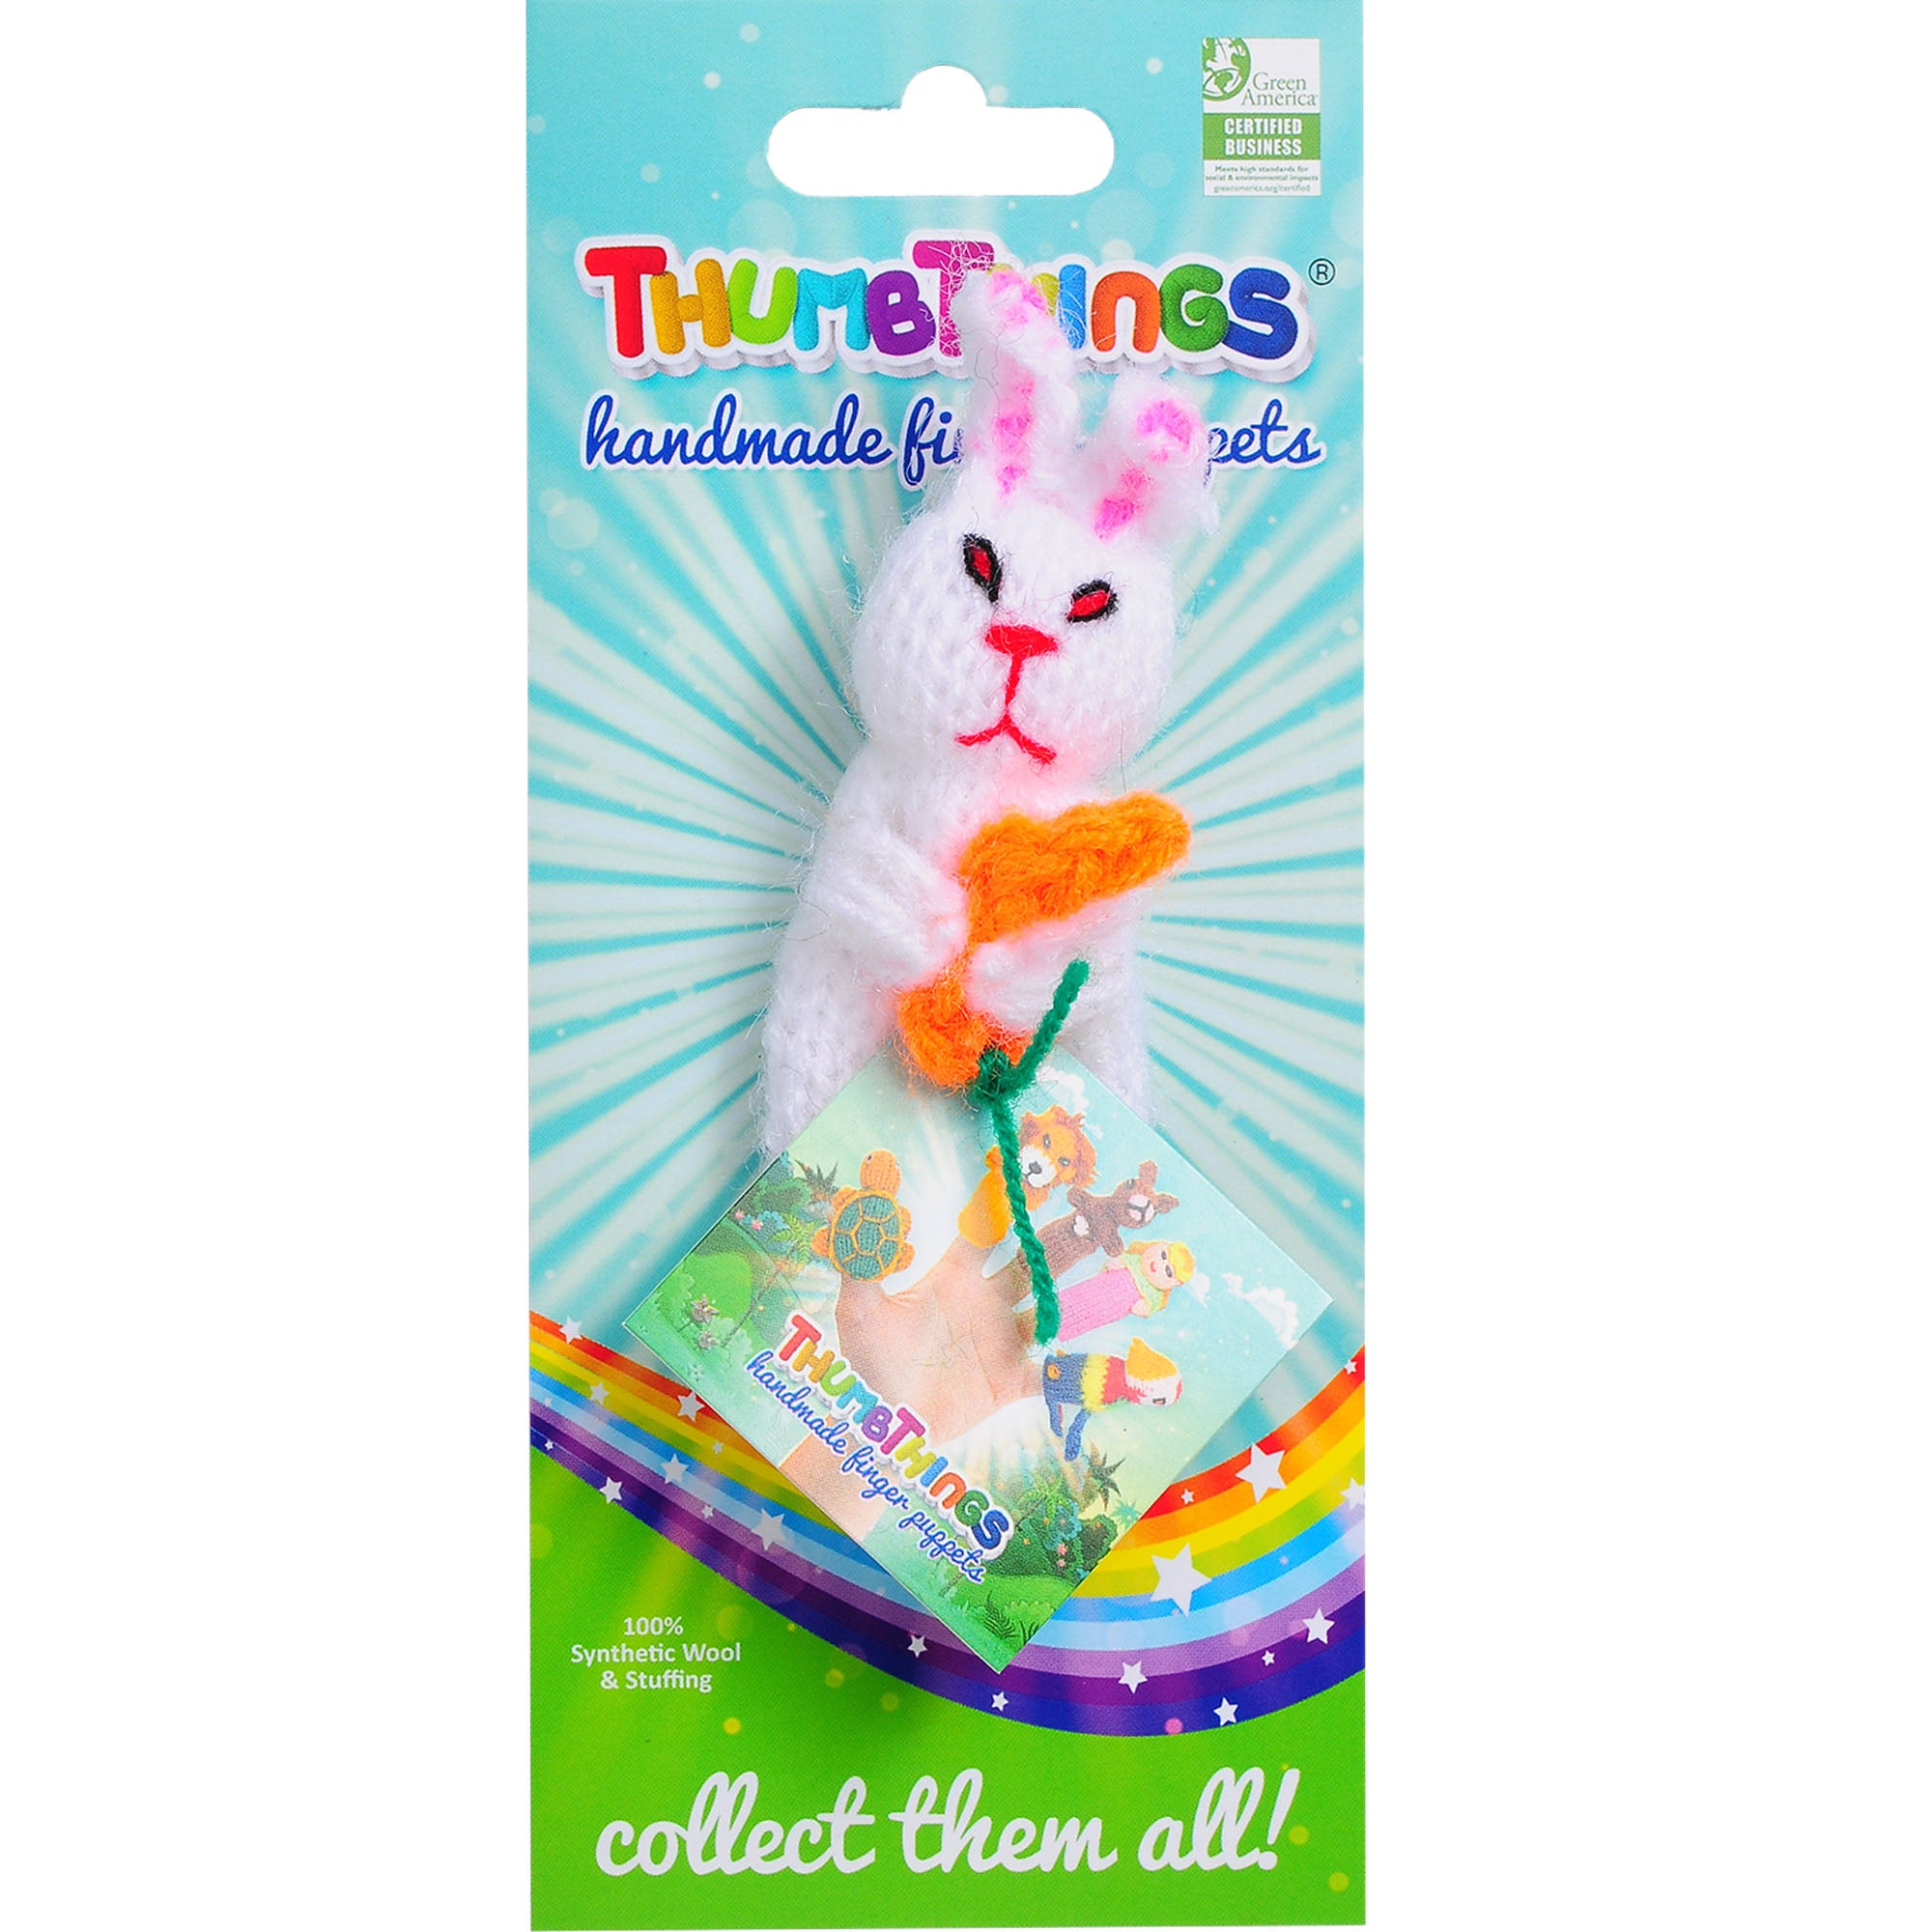 Thumbthings Easter Bunny Finger Puppet